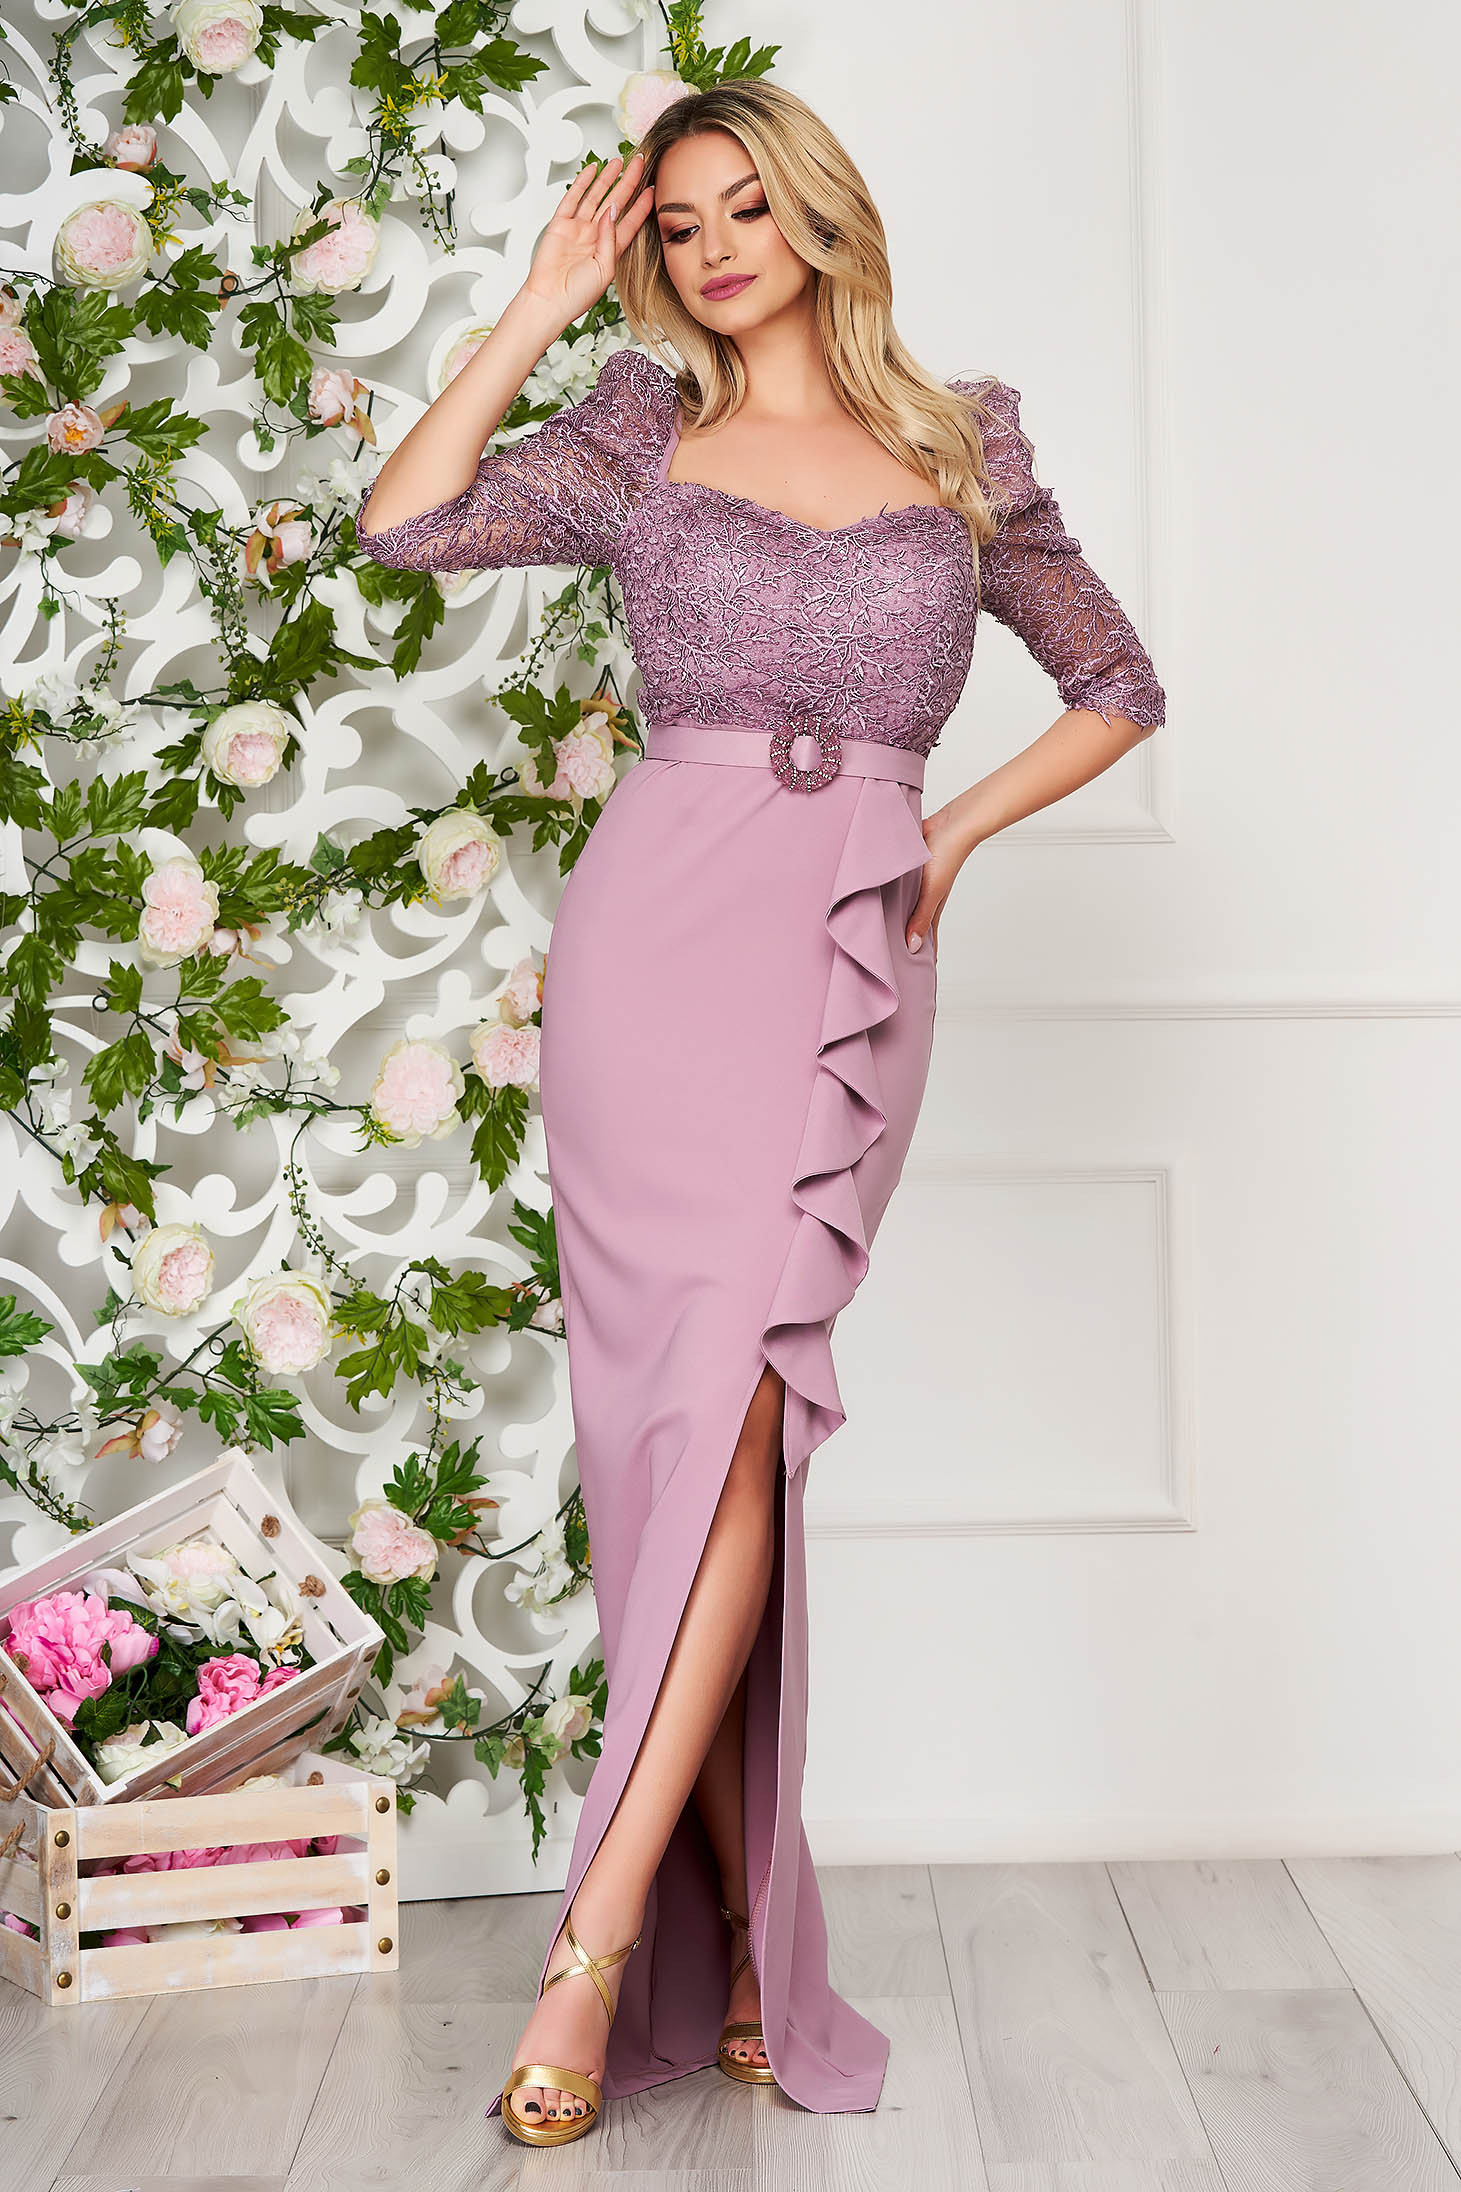 Lightpurple dress occasional long pencil cloth with ruffle details detachable cord